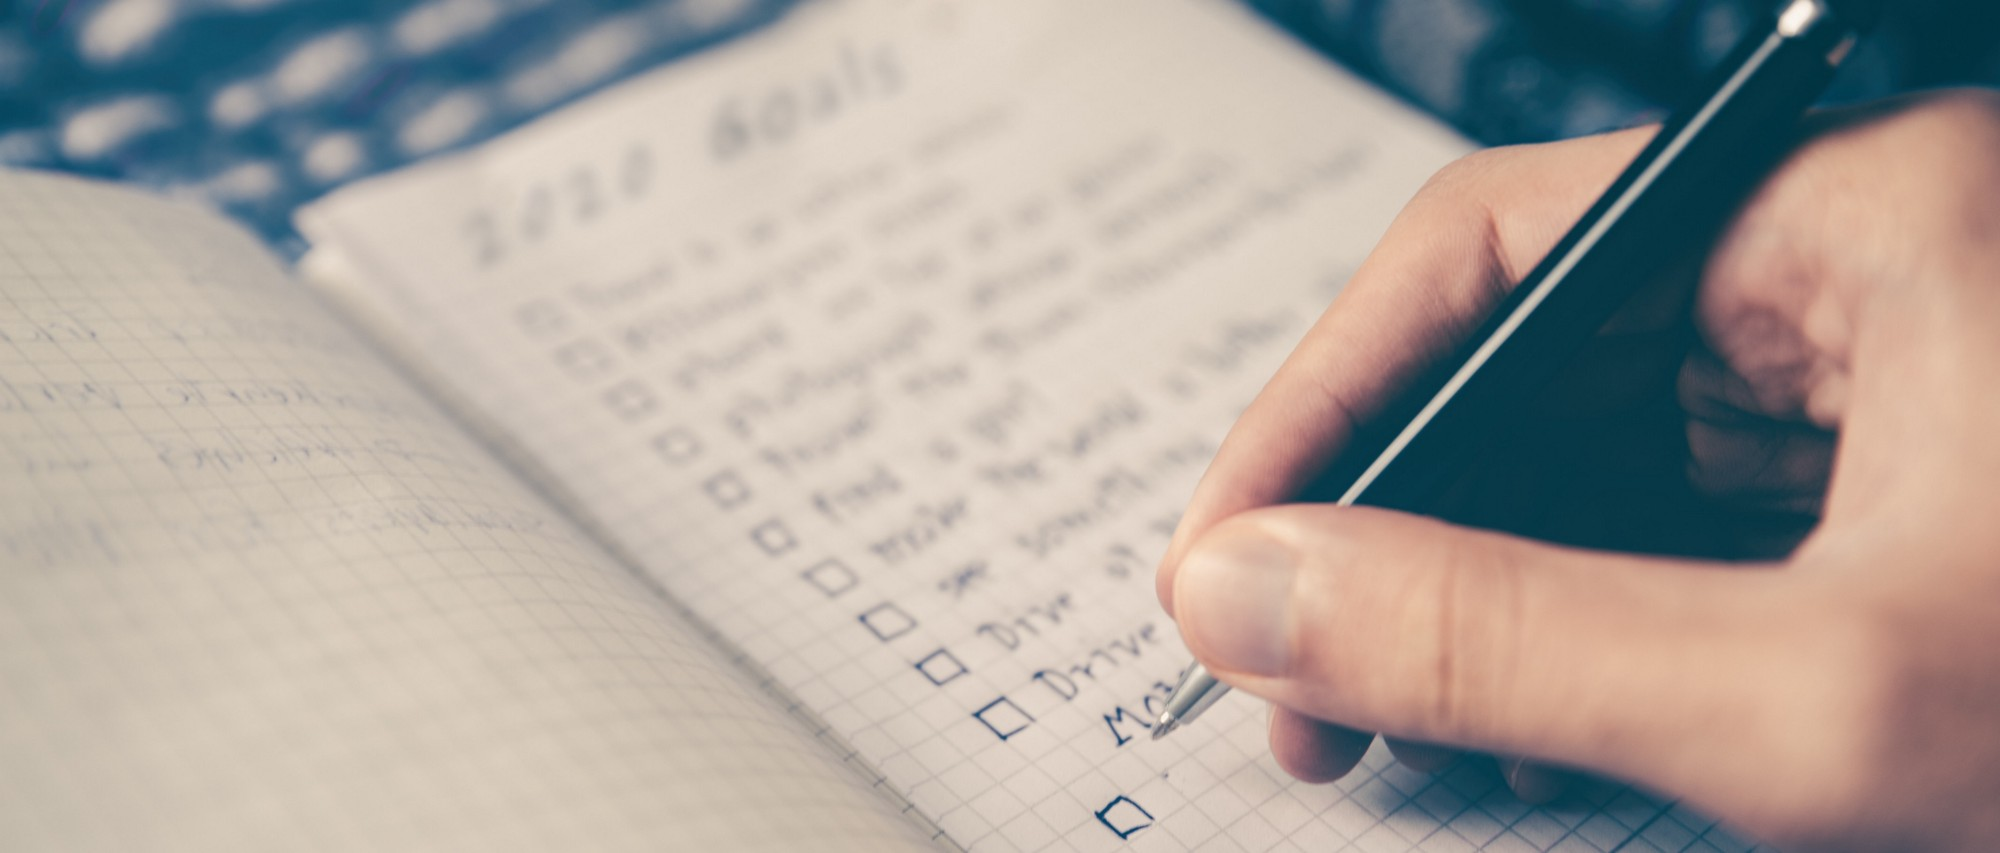 Someone writing a checklist of goals